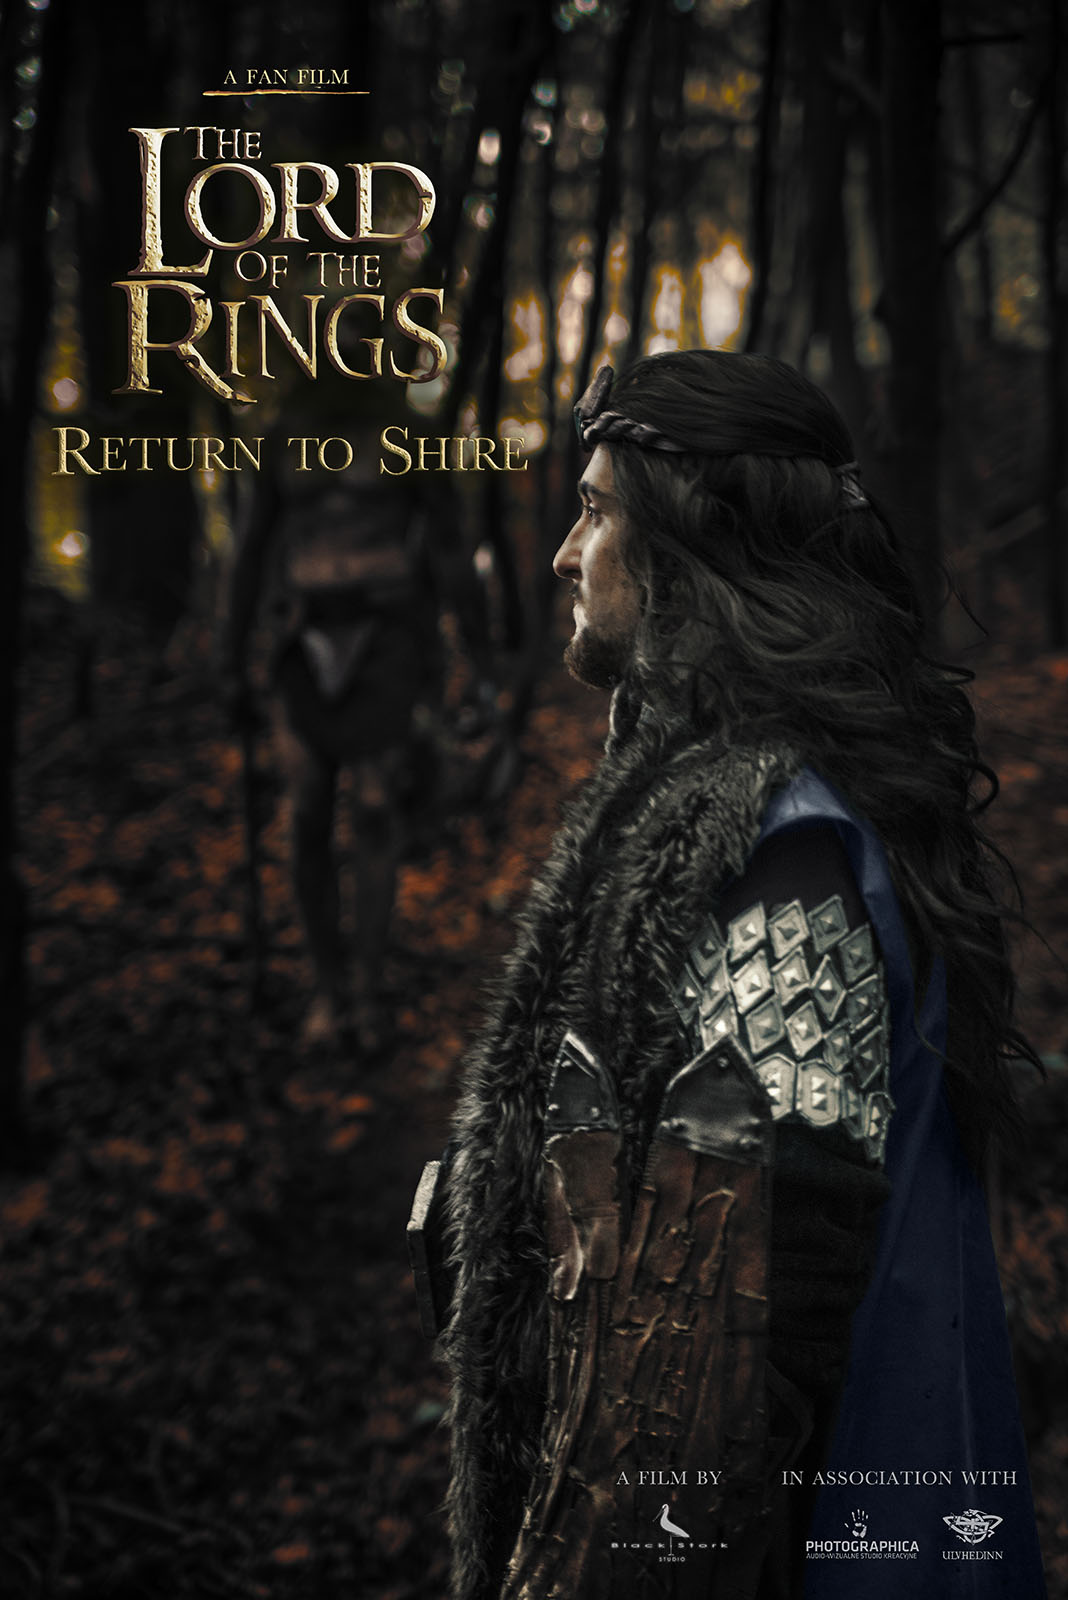 LotR RtS poster - Thorin